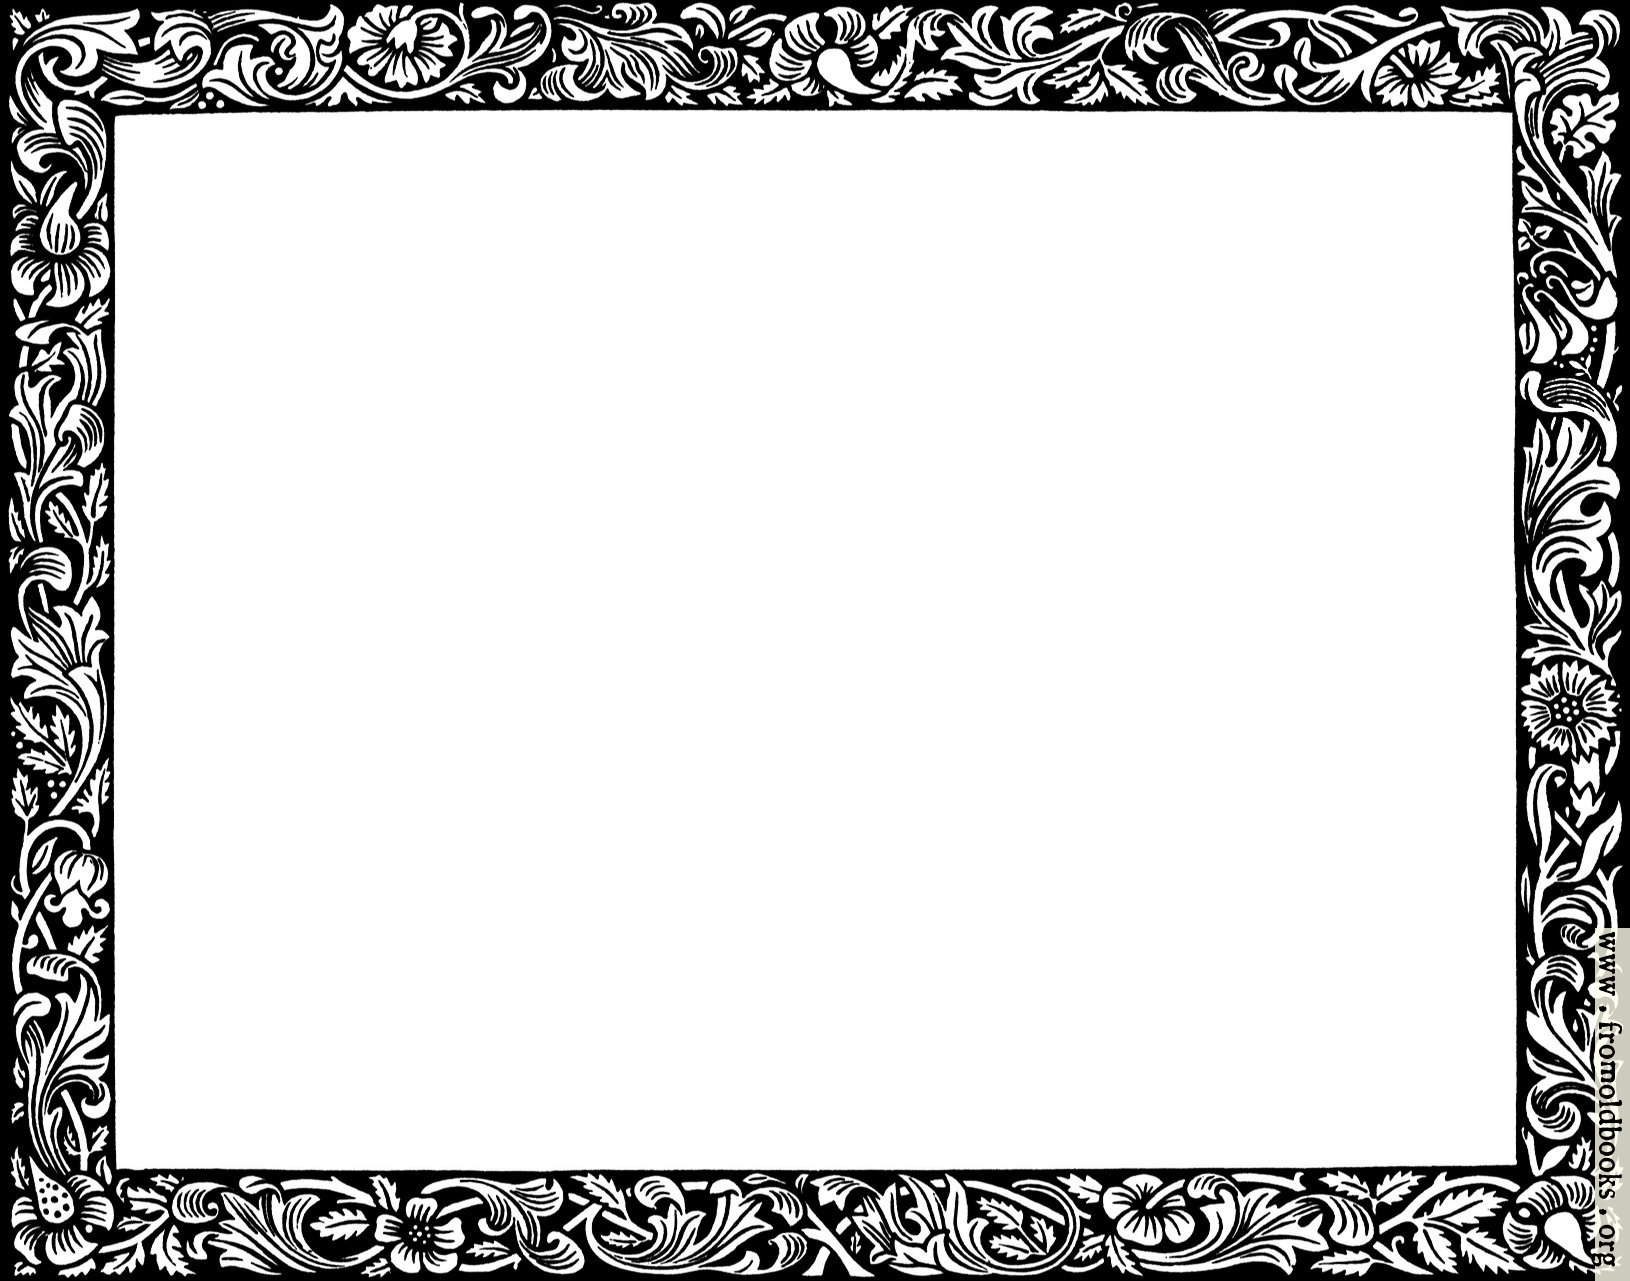 Elegant Page Border Designs